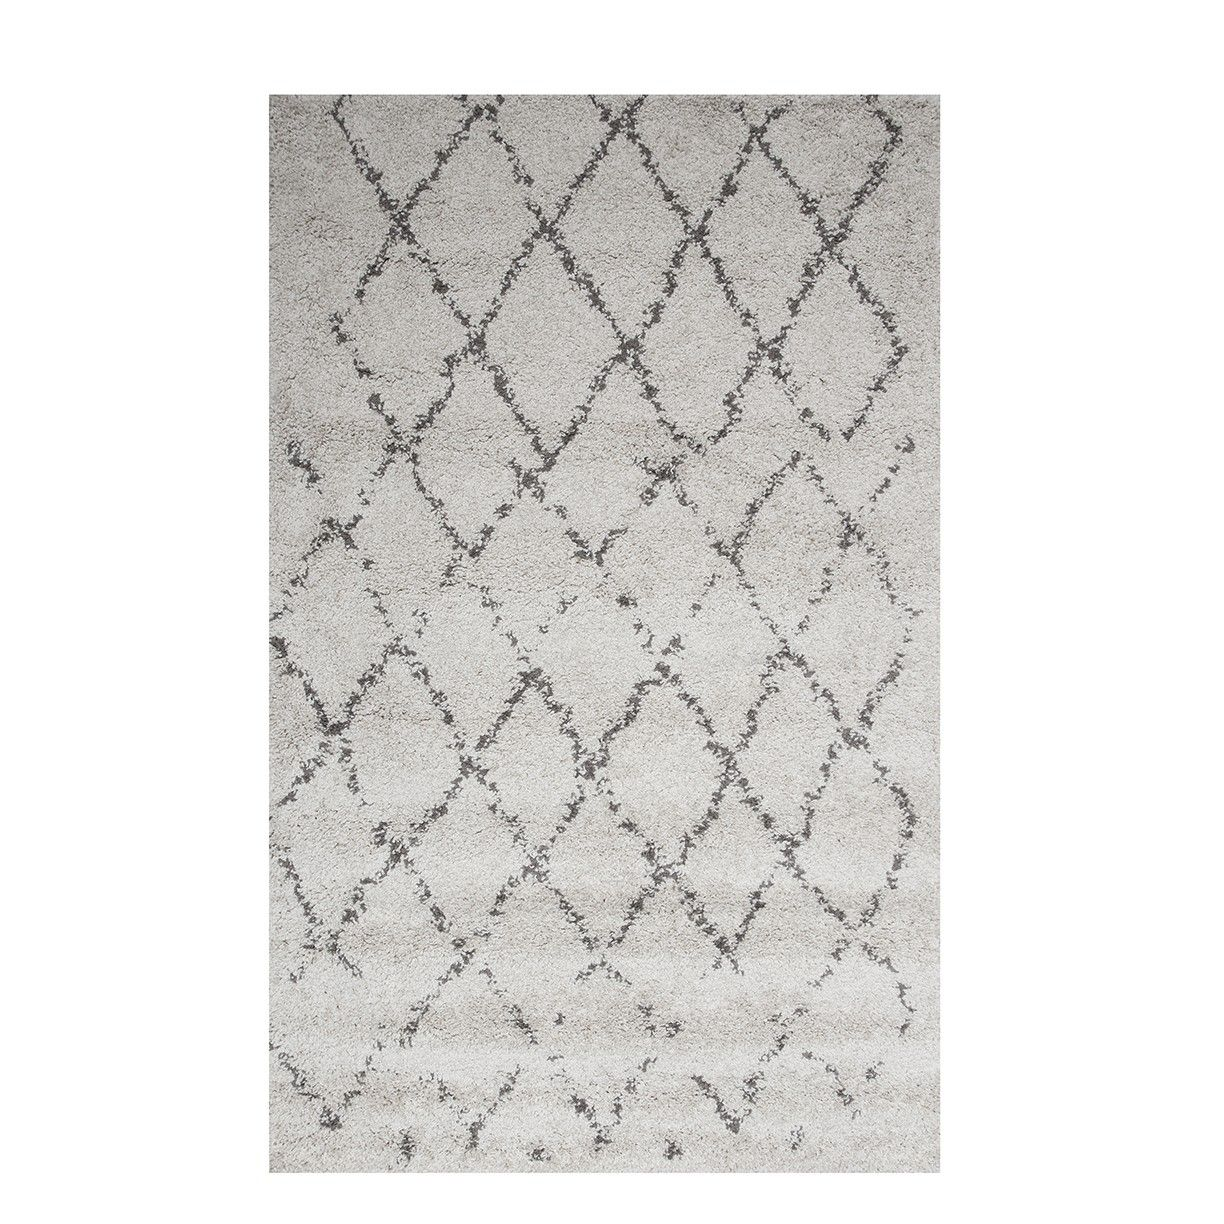 Trellis Cream Shaggy Rug Moroccan The Rug House